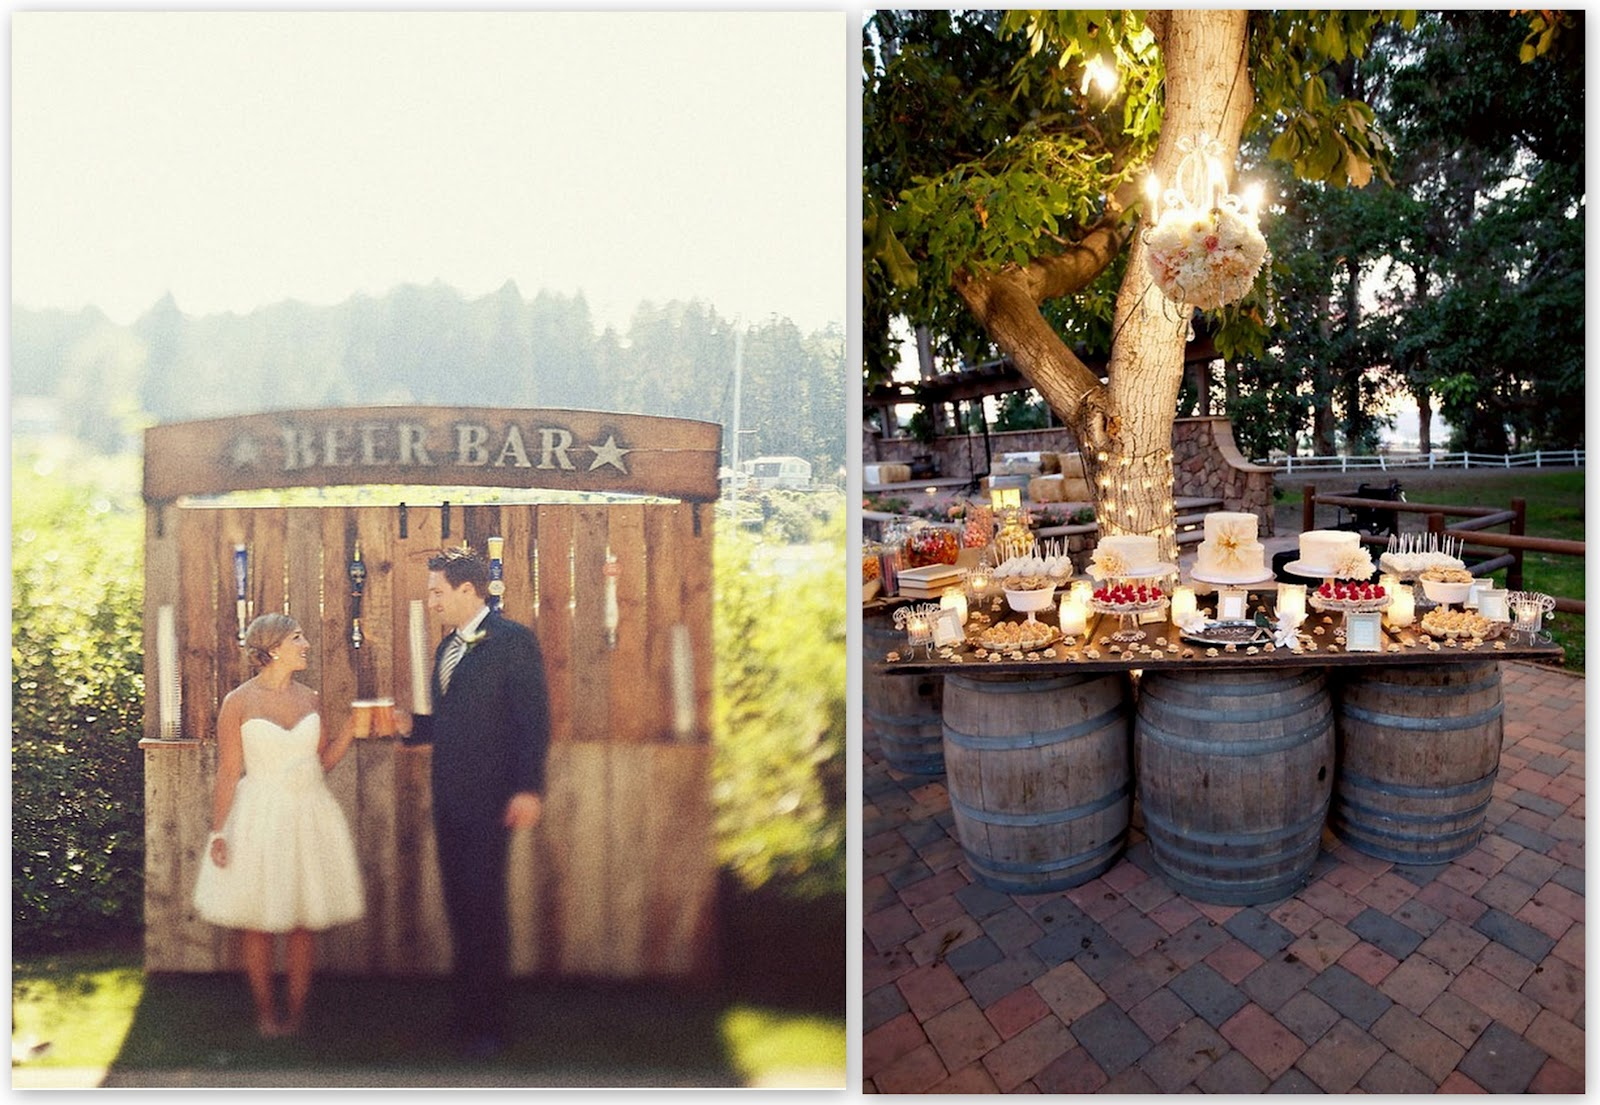 For Sure The Glamorous Fairytale Wedding Can Be Amazing But Me Nothing Compares To A Country Rustic Barn Both In And Outdoor